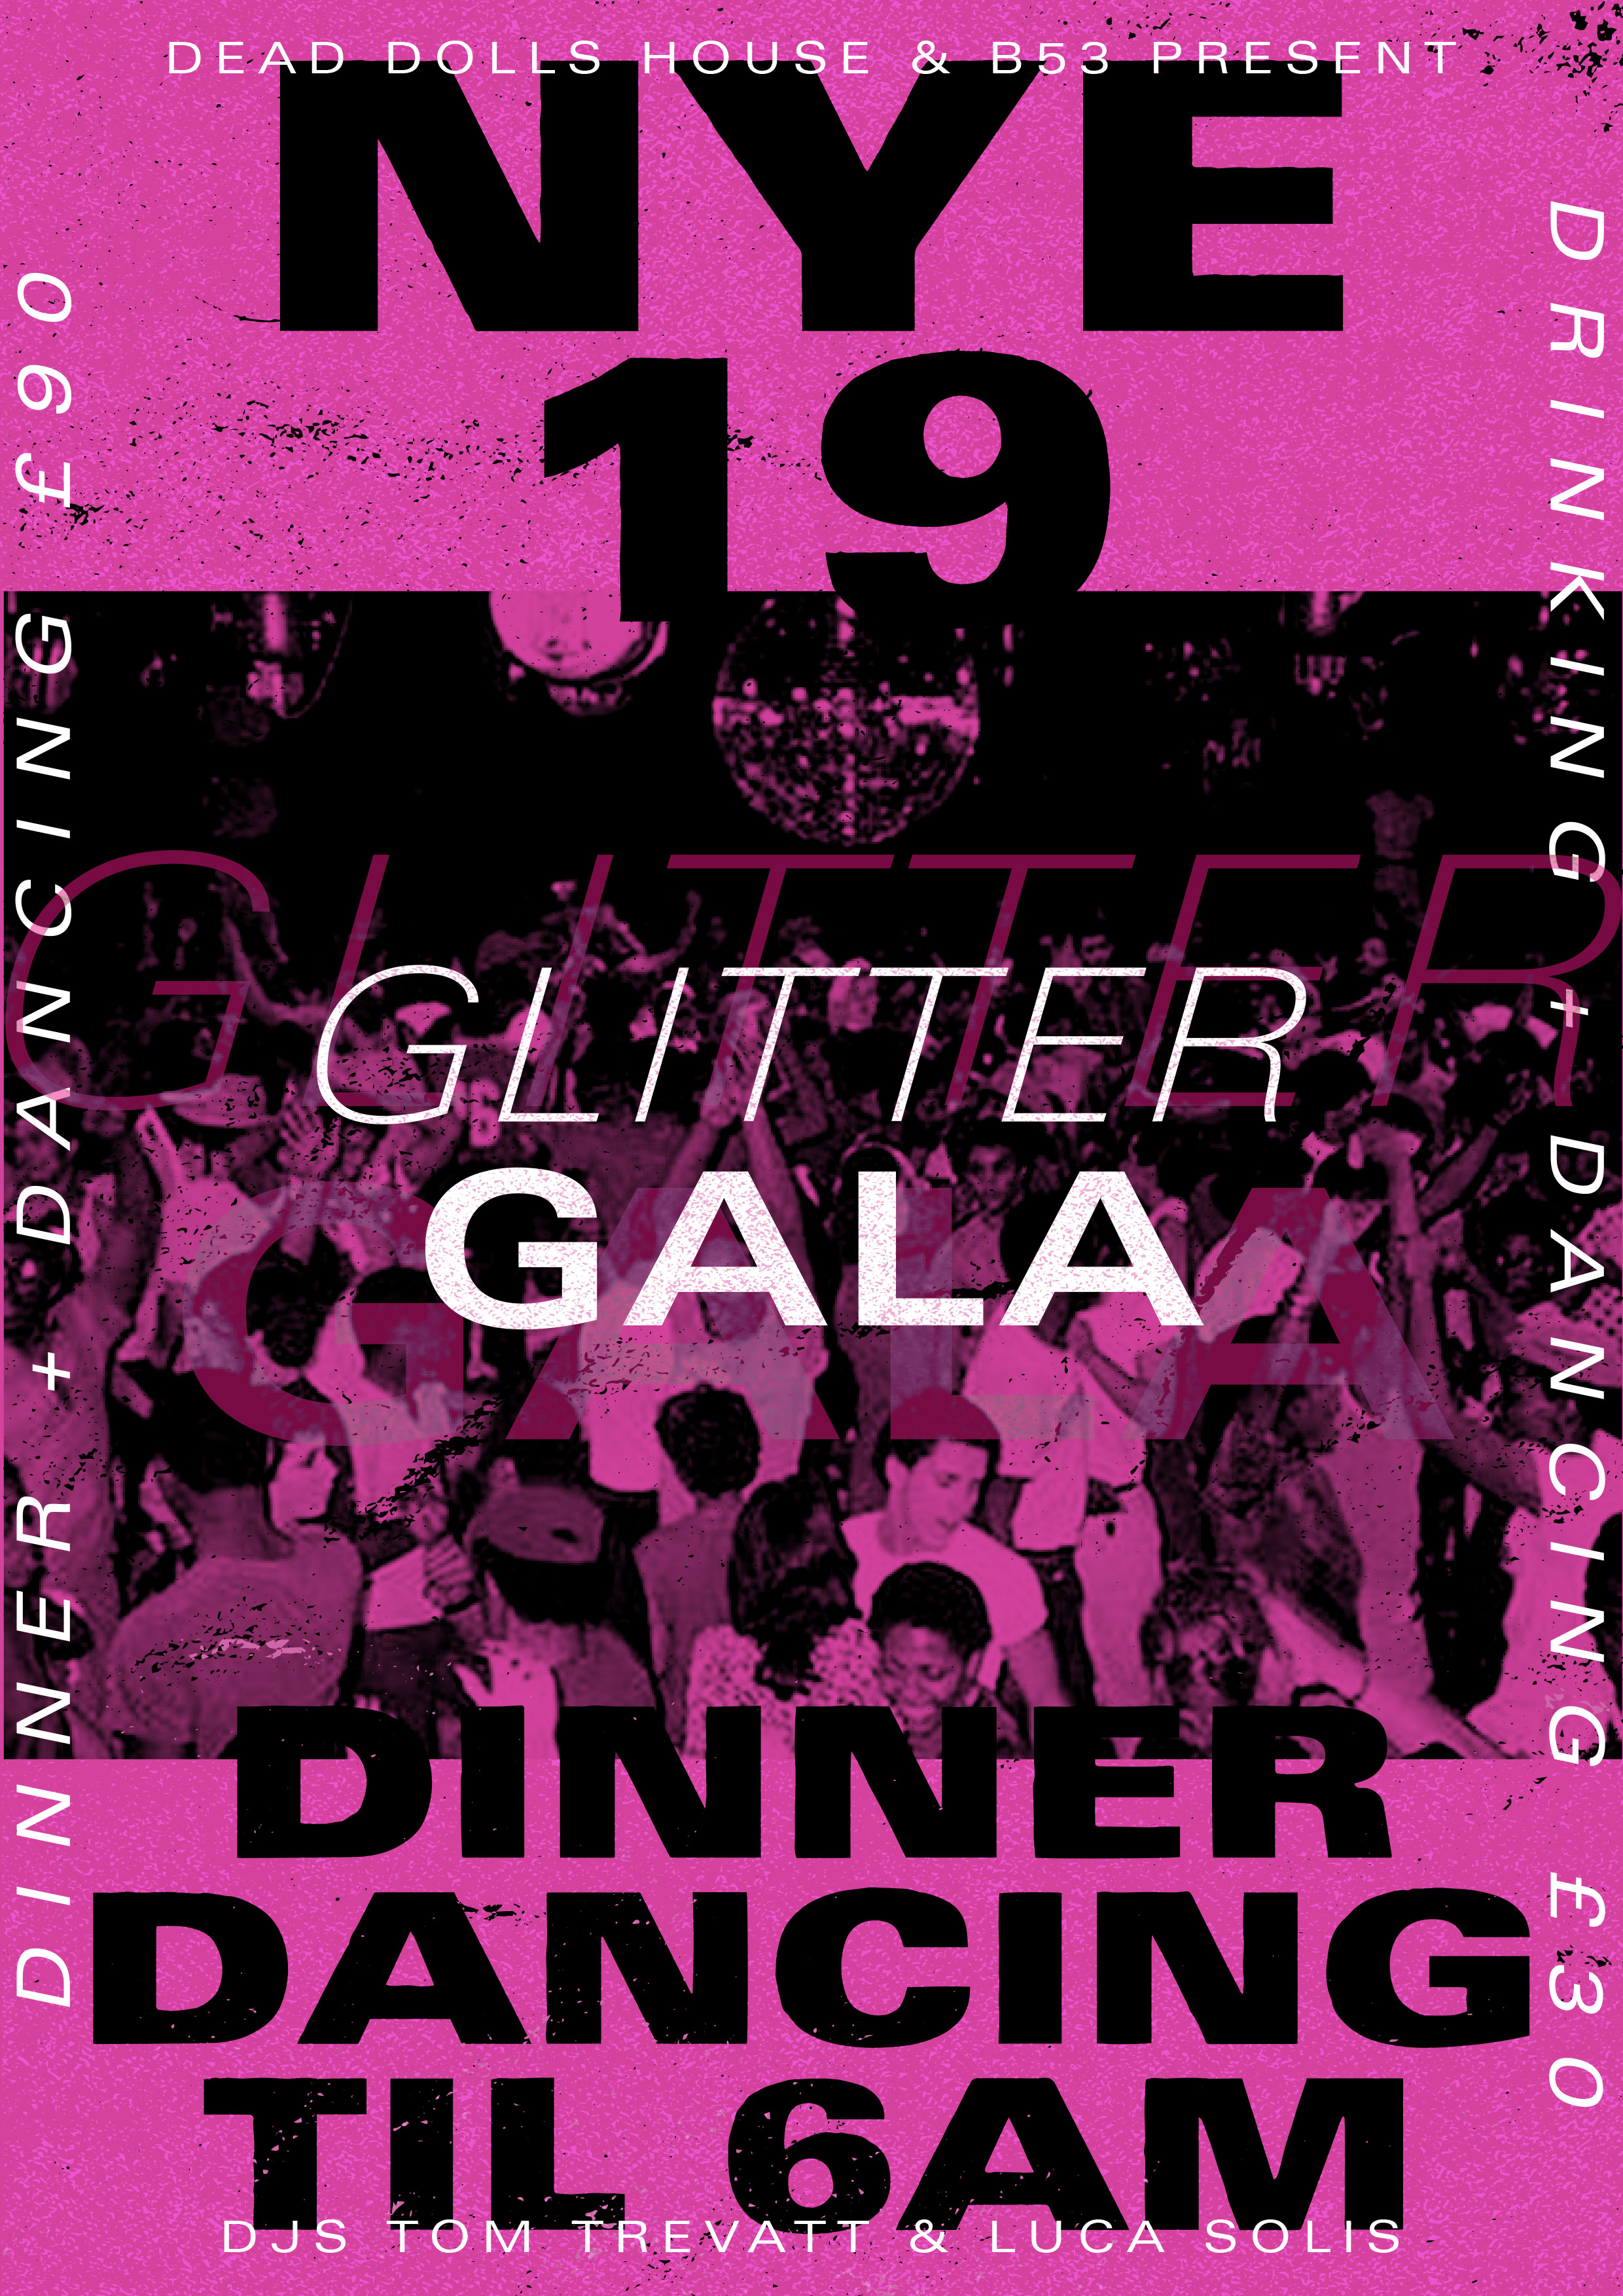 Dead Dolls House - New Years Eve Glitter Gala